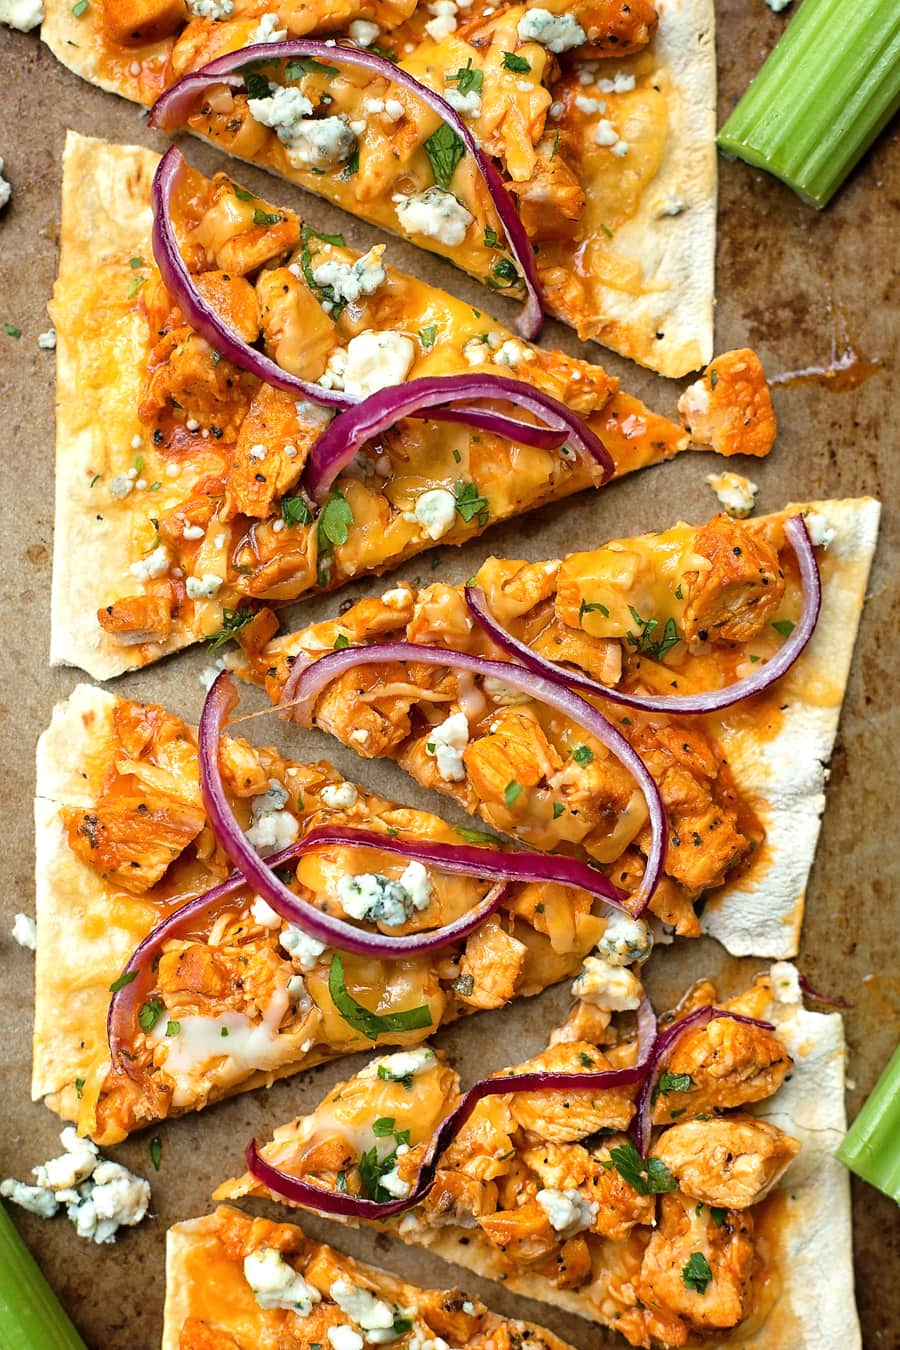 Lightened Up Flatbread Pizzas | Buffalo Chicken Pizza - a lighter version that is full of flavor!